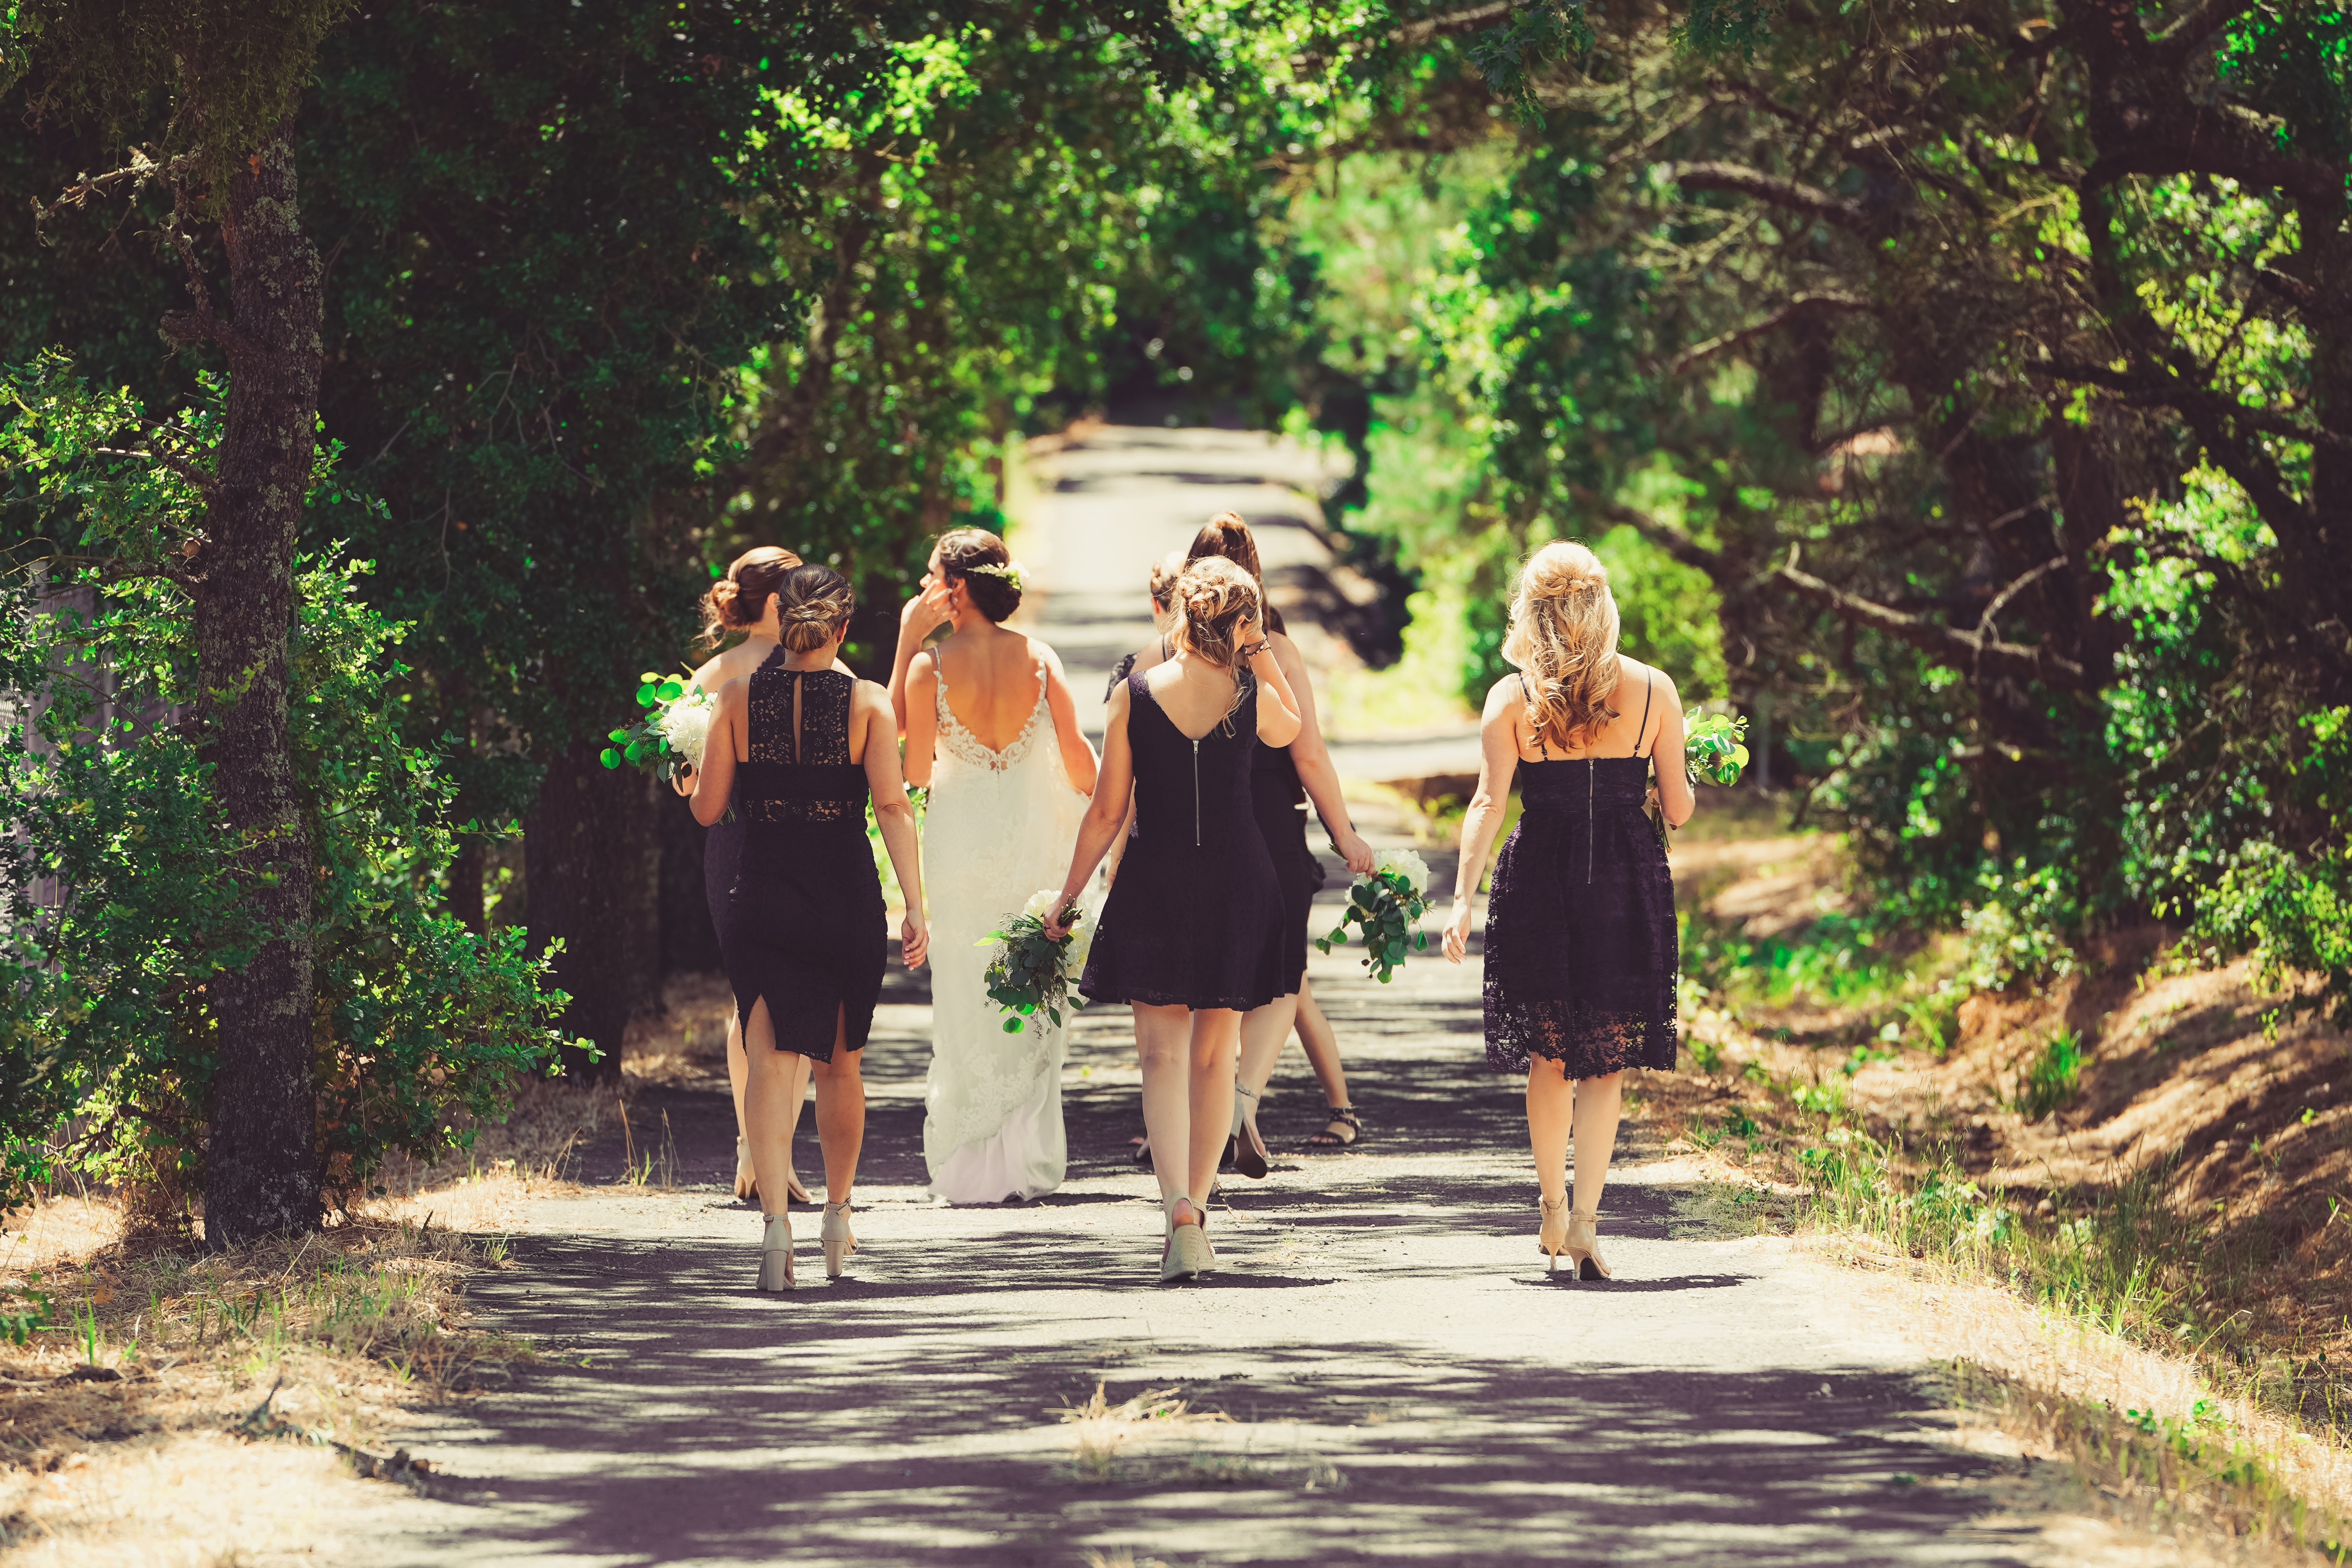 Bride and her bridesmaids walking down a country road for wedding photos